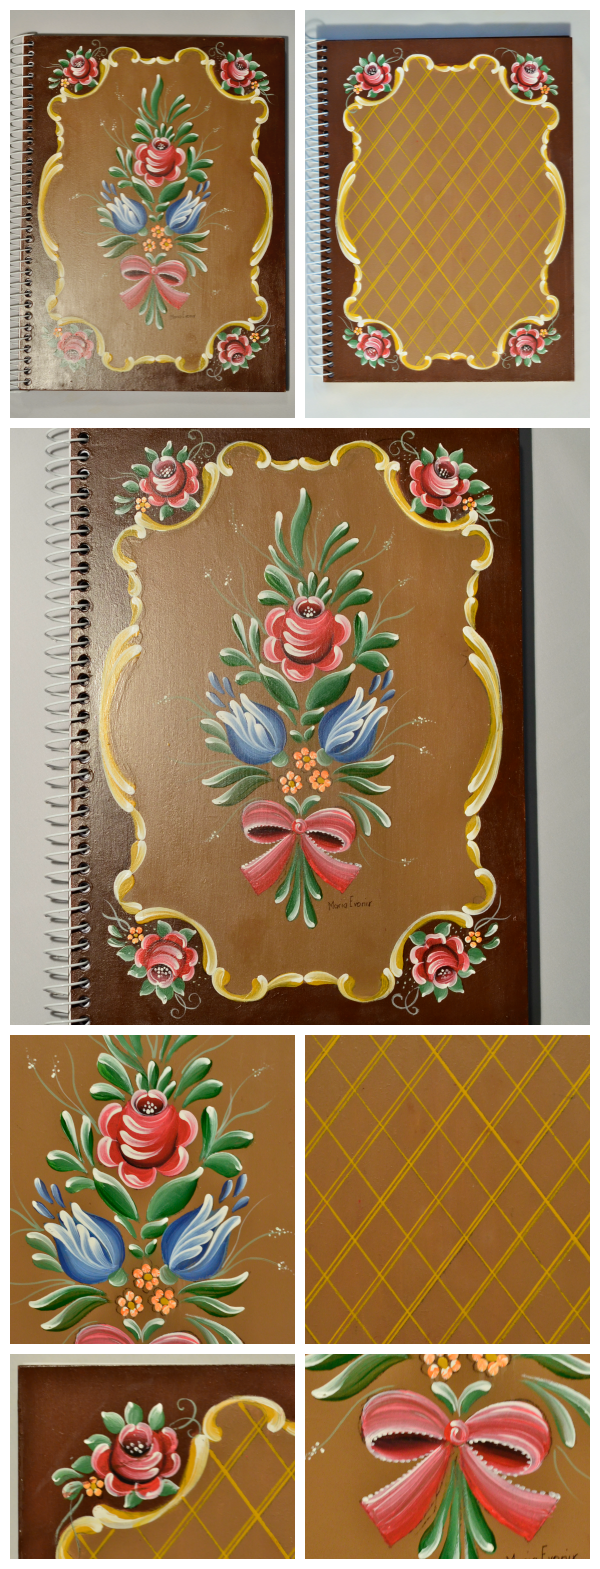 This book cover reminds me of a table my grandmother had in her house. This style of painting was on more than just the table. She must have liked it.